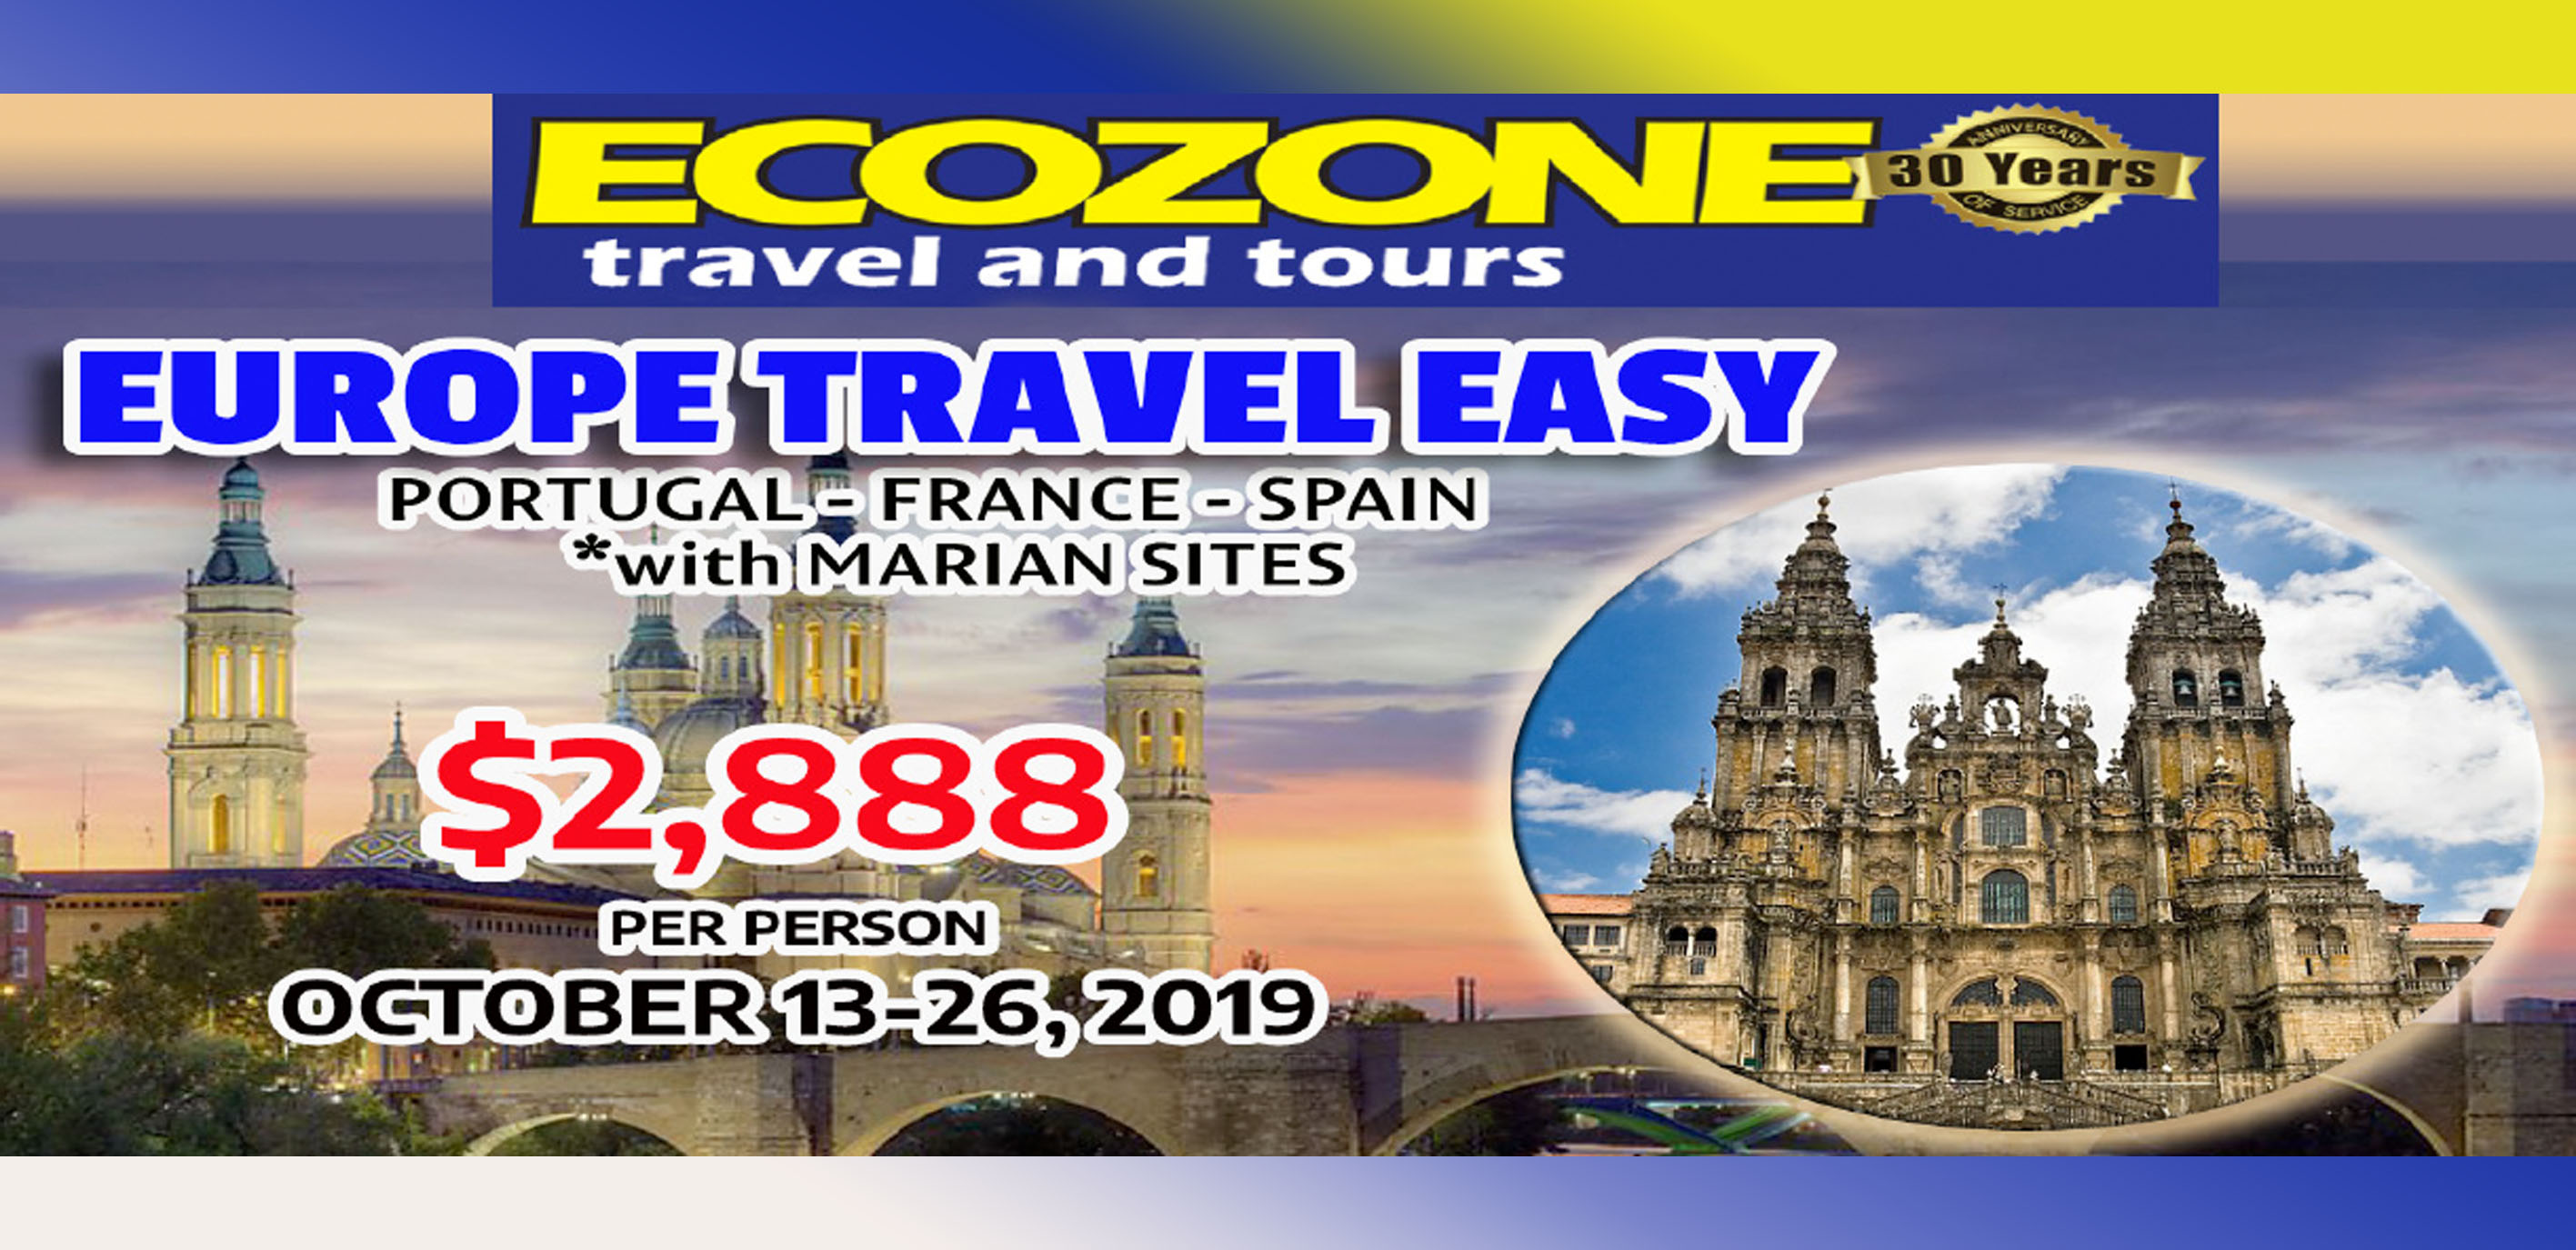 Europe Travel Easy Featured Images 2019 June Packages